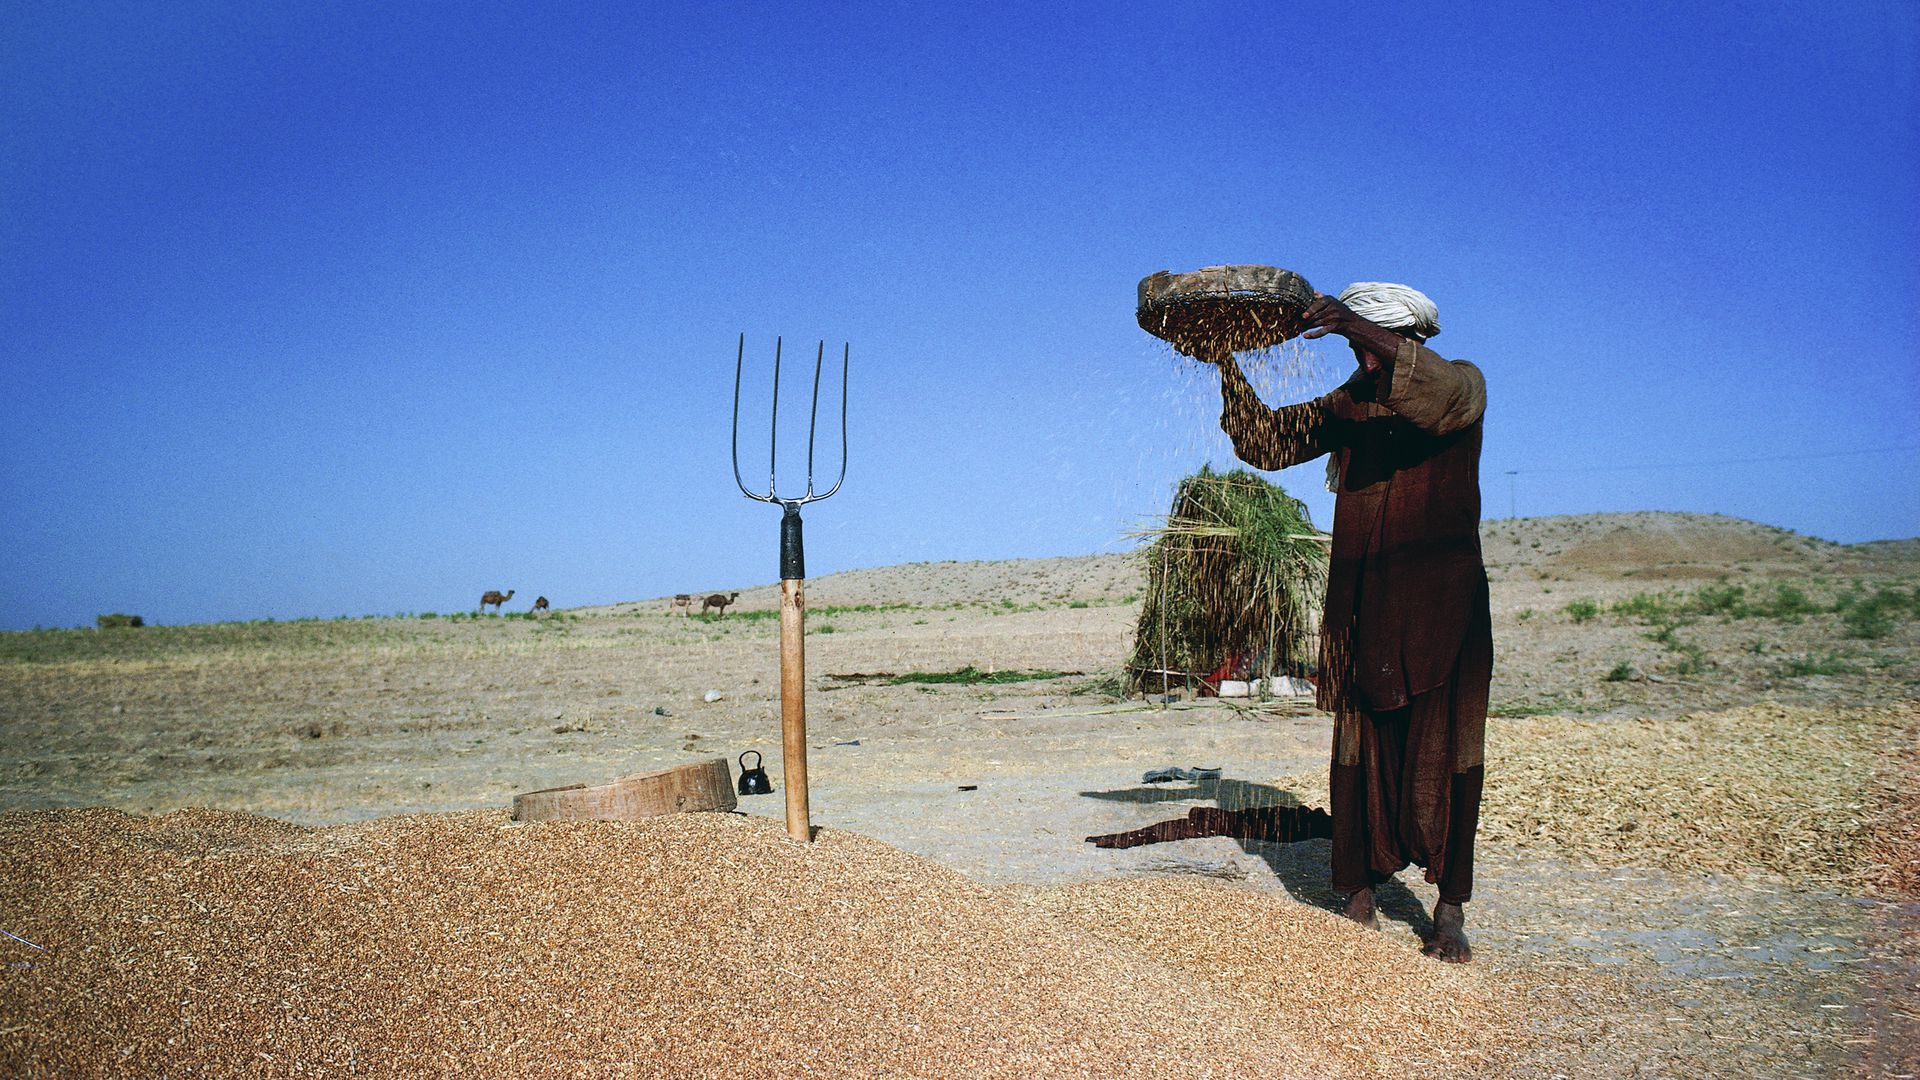 A man threshing wheat in a village in the Khorasan region,